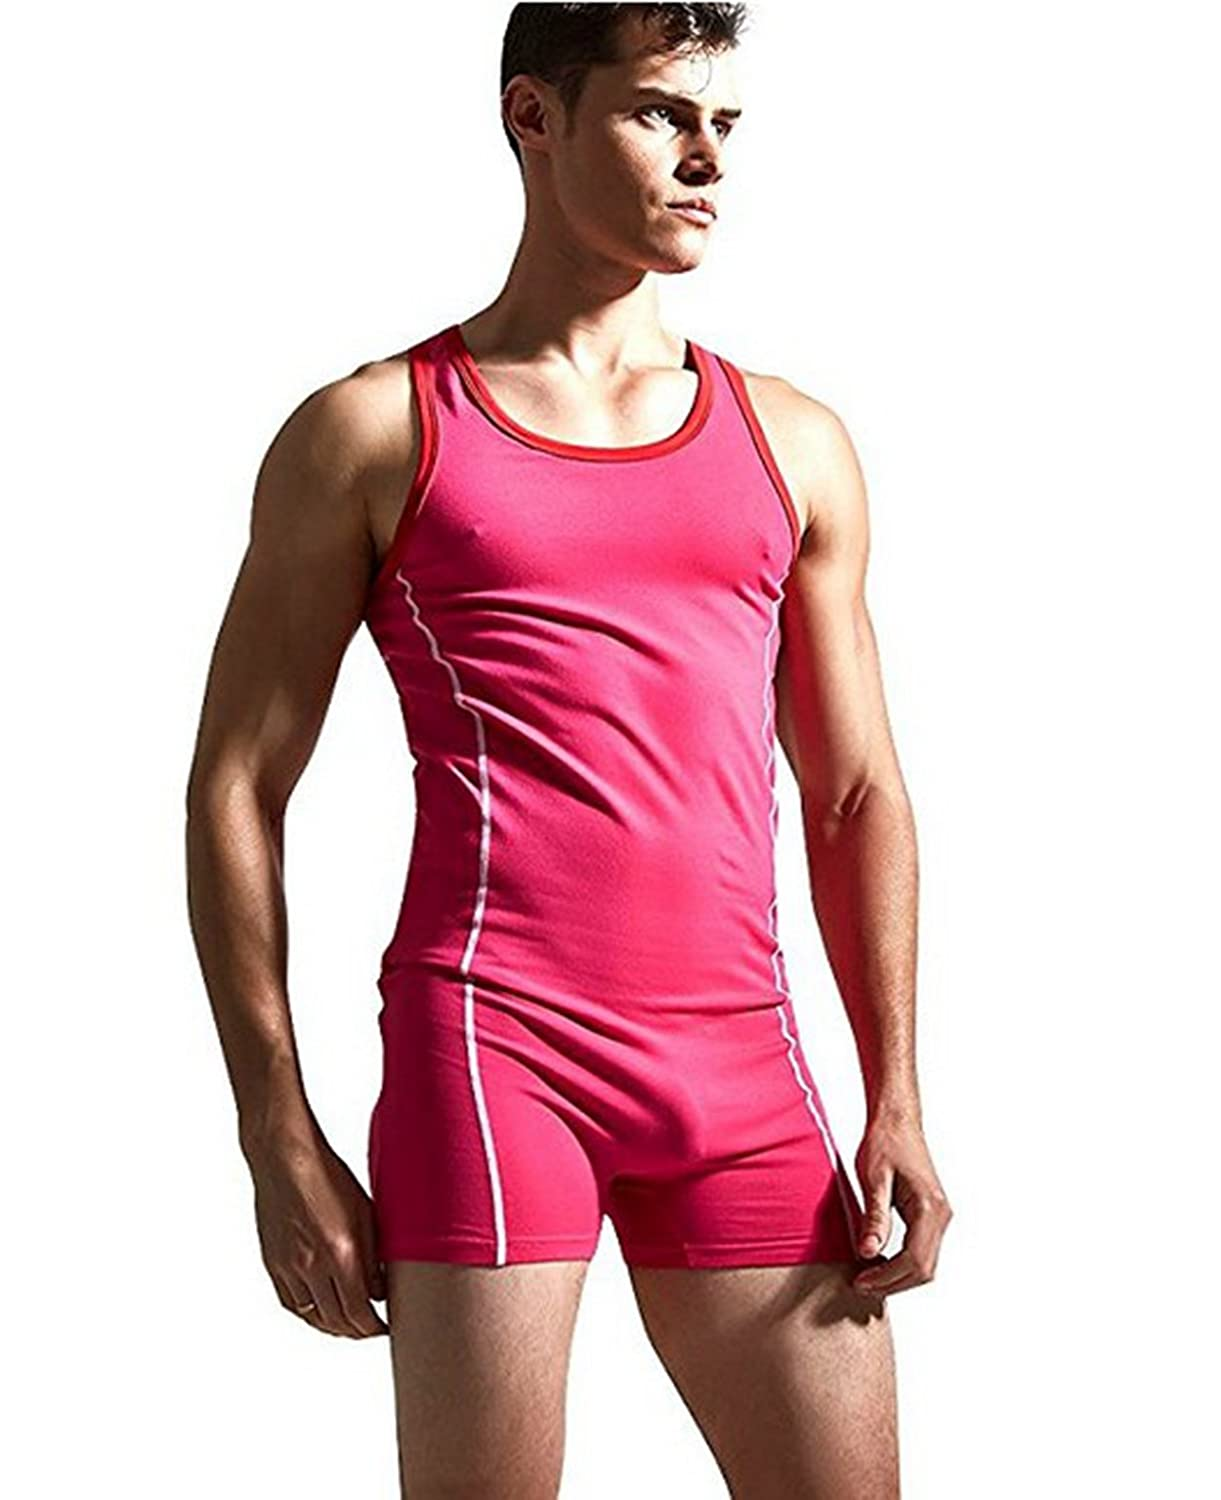 CHICTRY Men's Sleeveless On Piece Bodysuit Leotard Stretchy Singlet Gymnastics Underwear